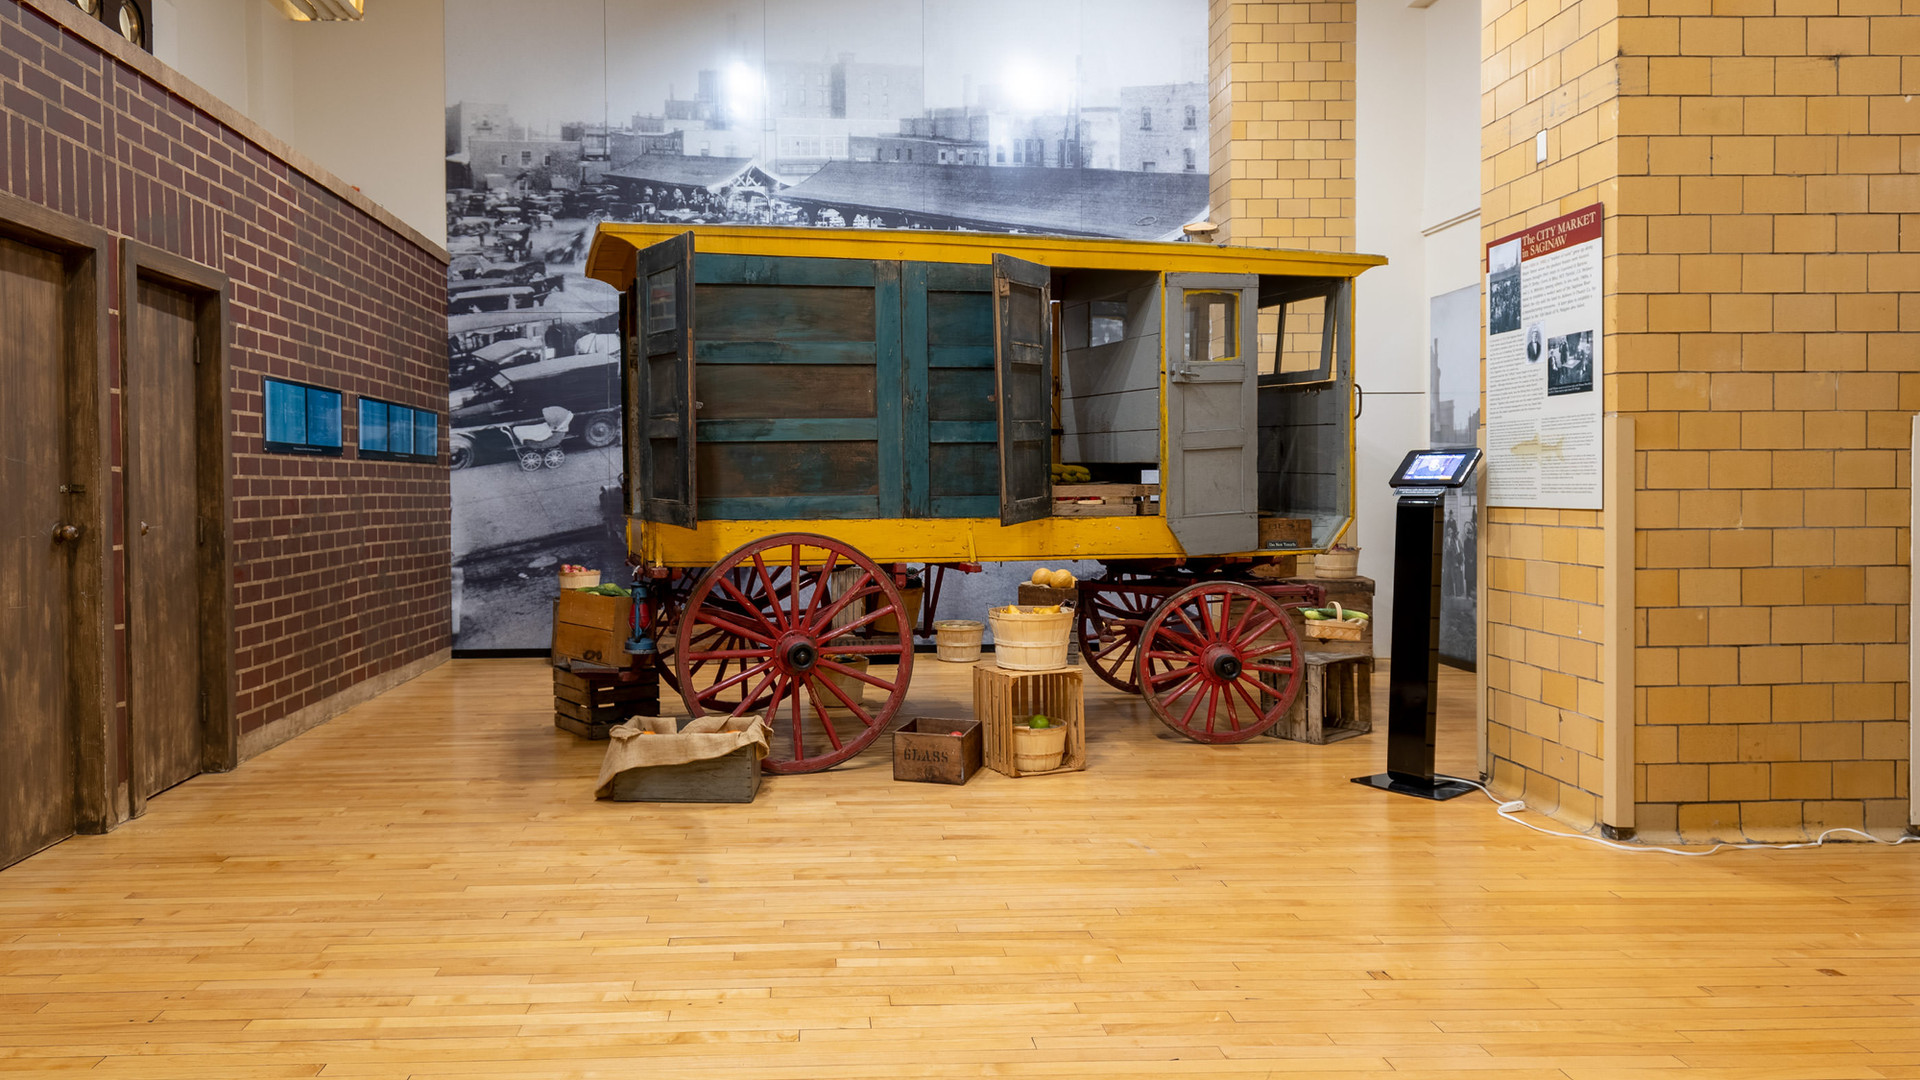 Huckster Wagon Exhibit